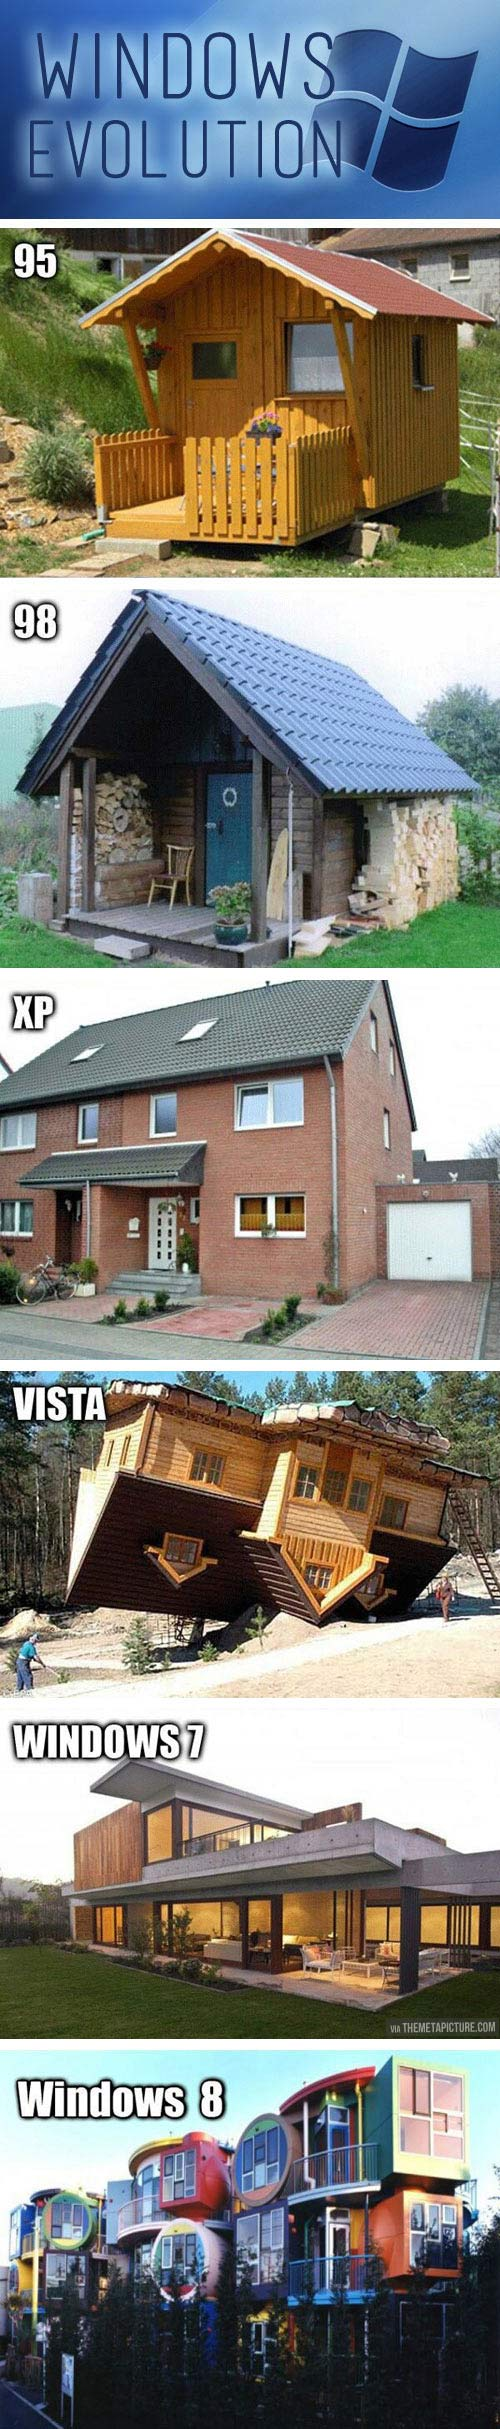 funny-Windows-evolution-house